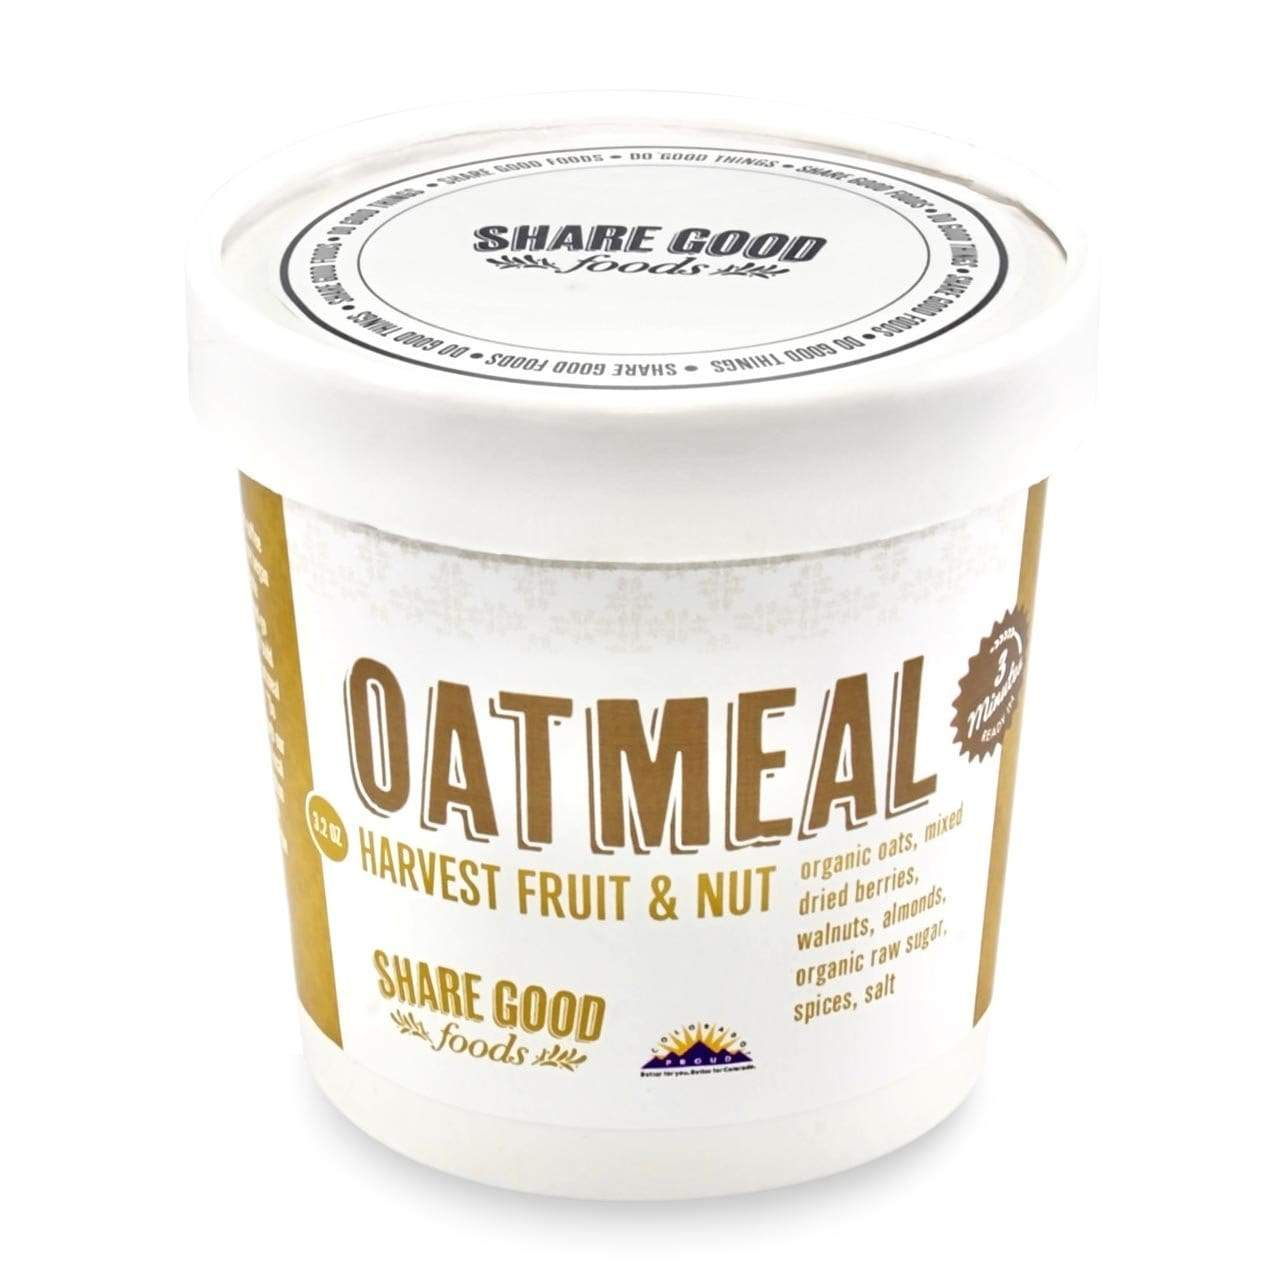 Share Good Foods Oatmeal Cups - Harvest Fruit and Nut Breakfast